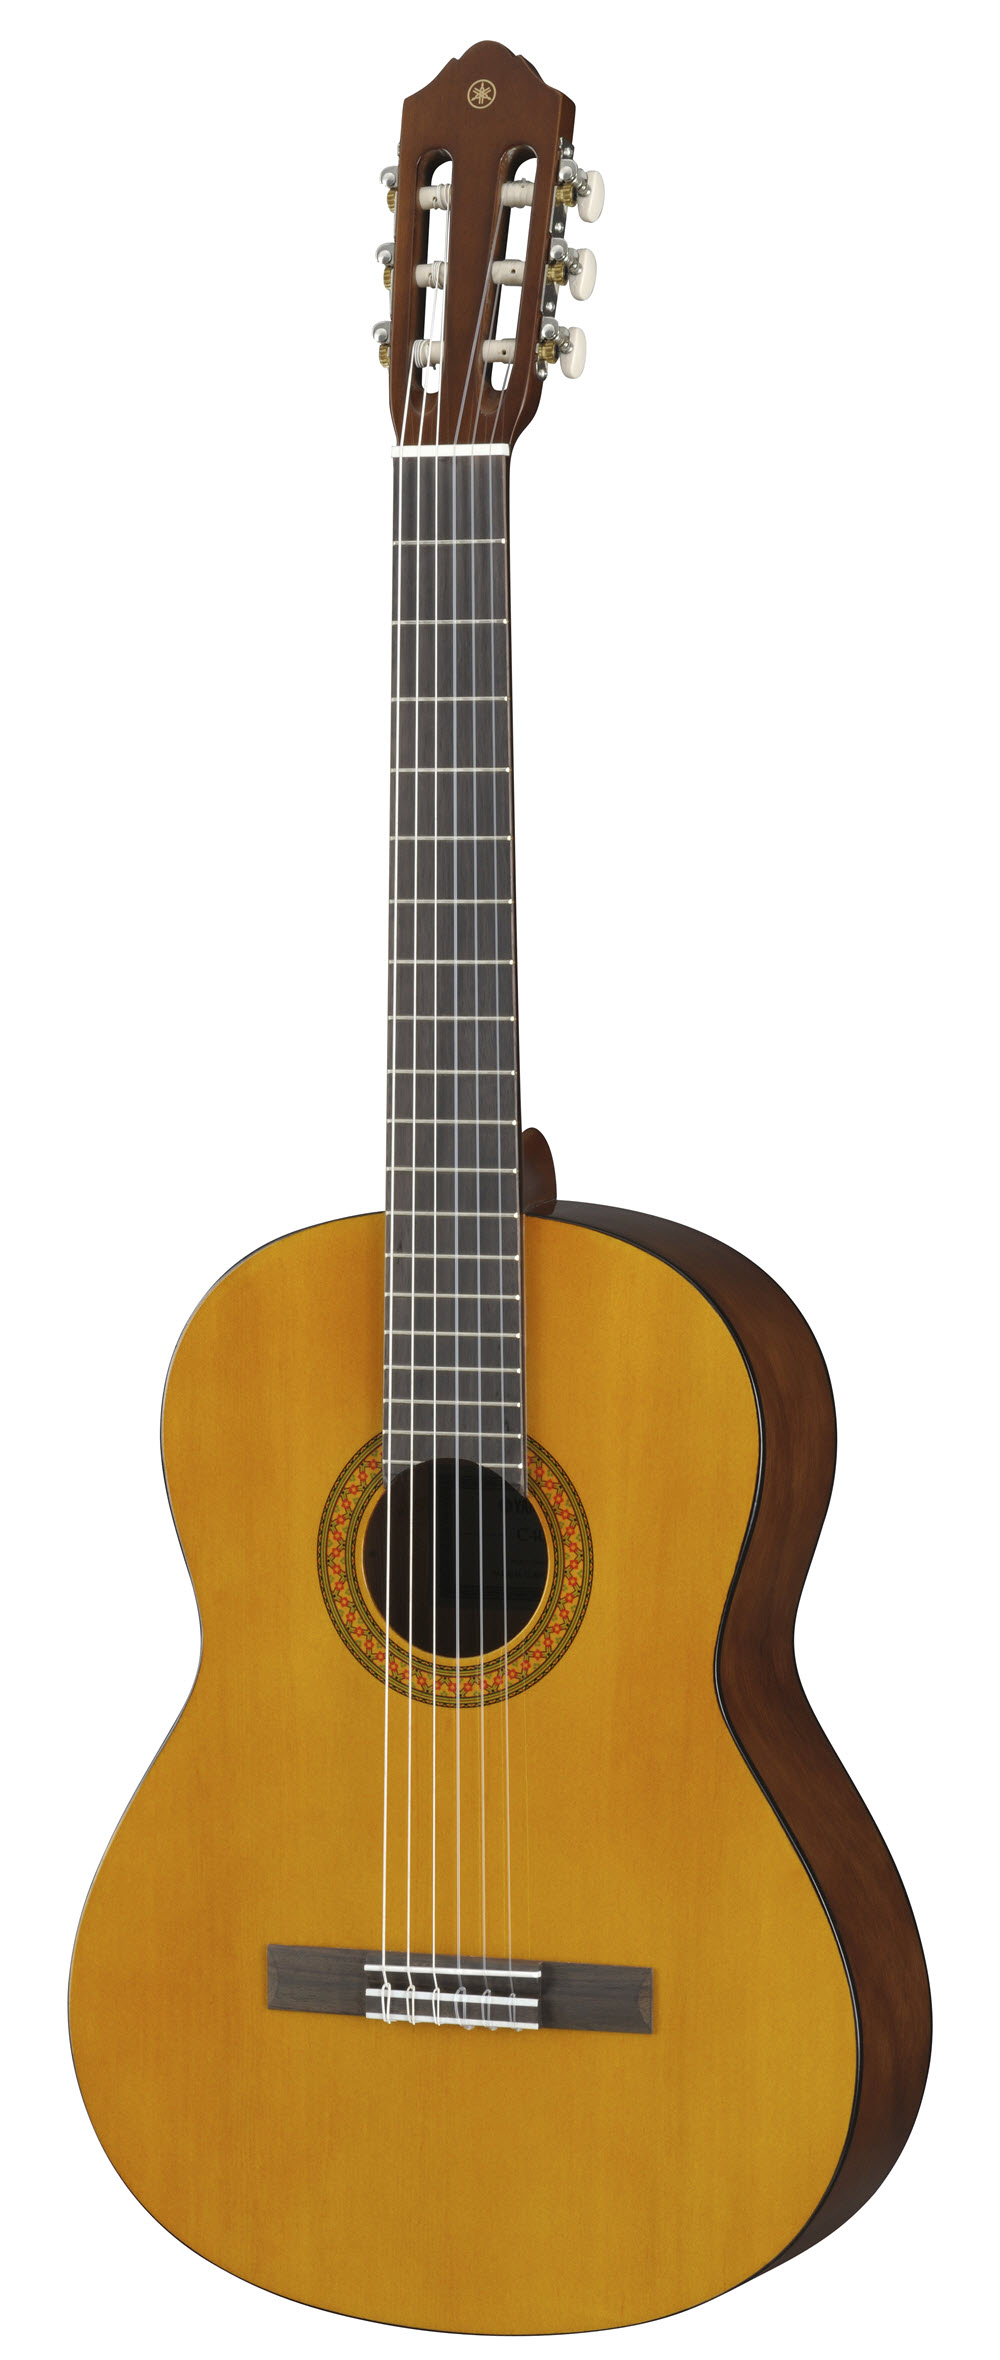 Acoustic guitar with wood finish and nylon strings.